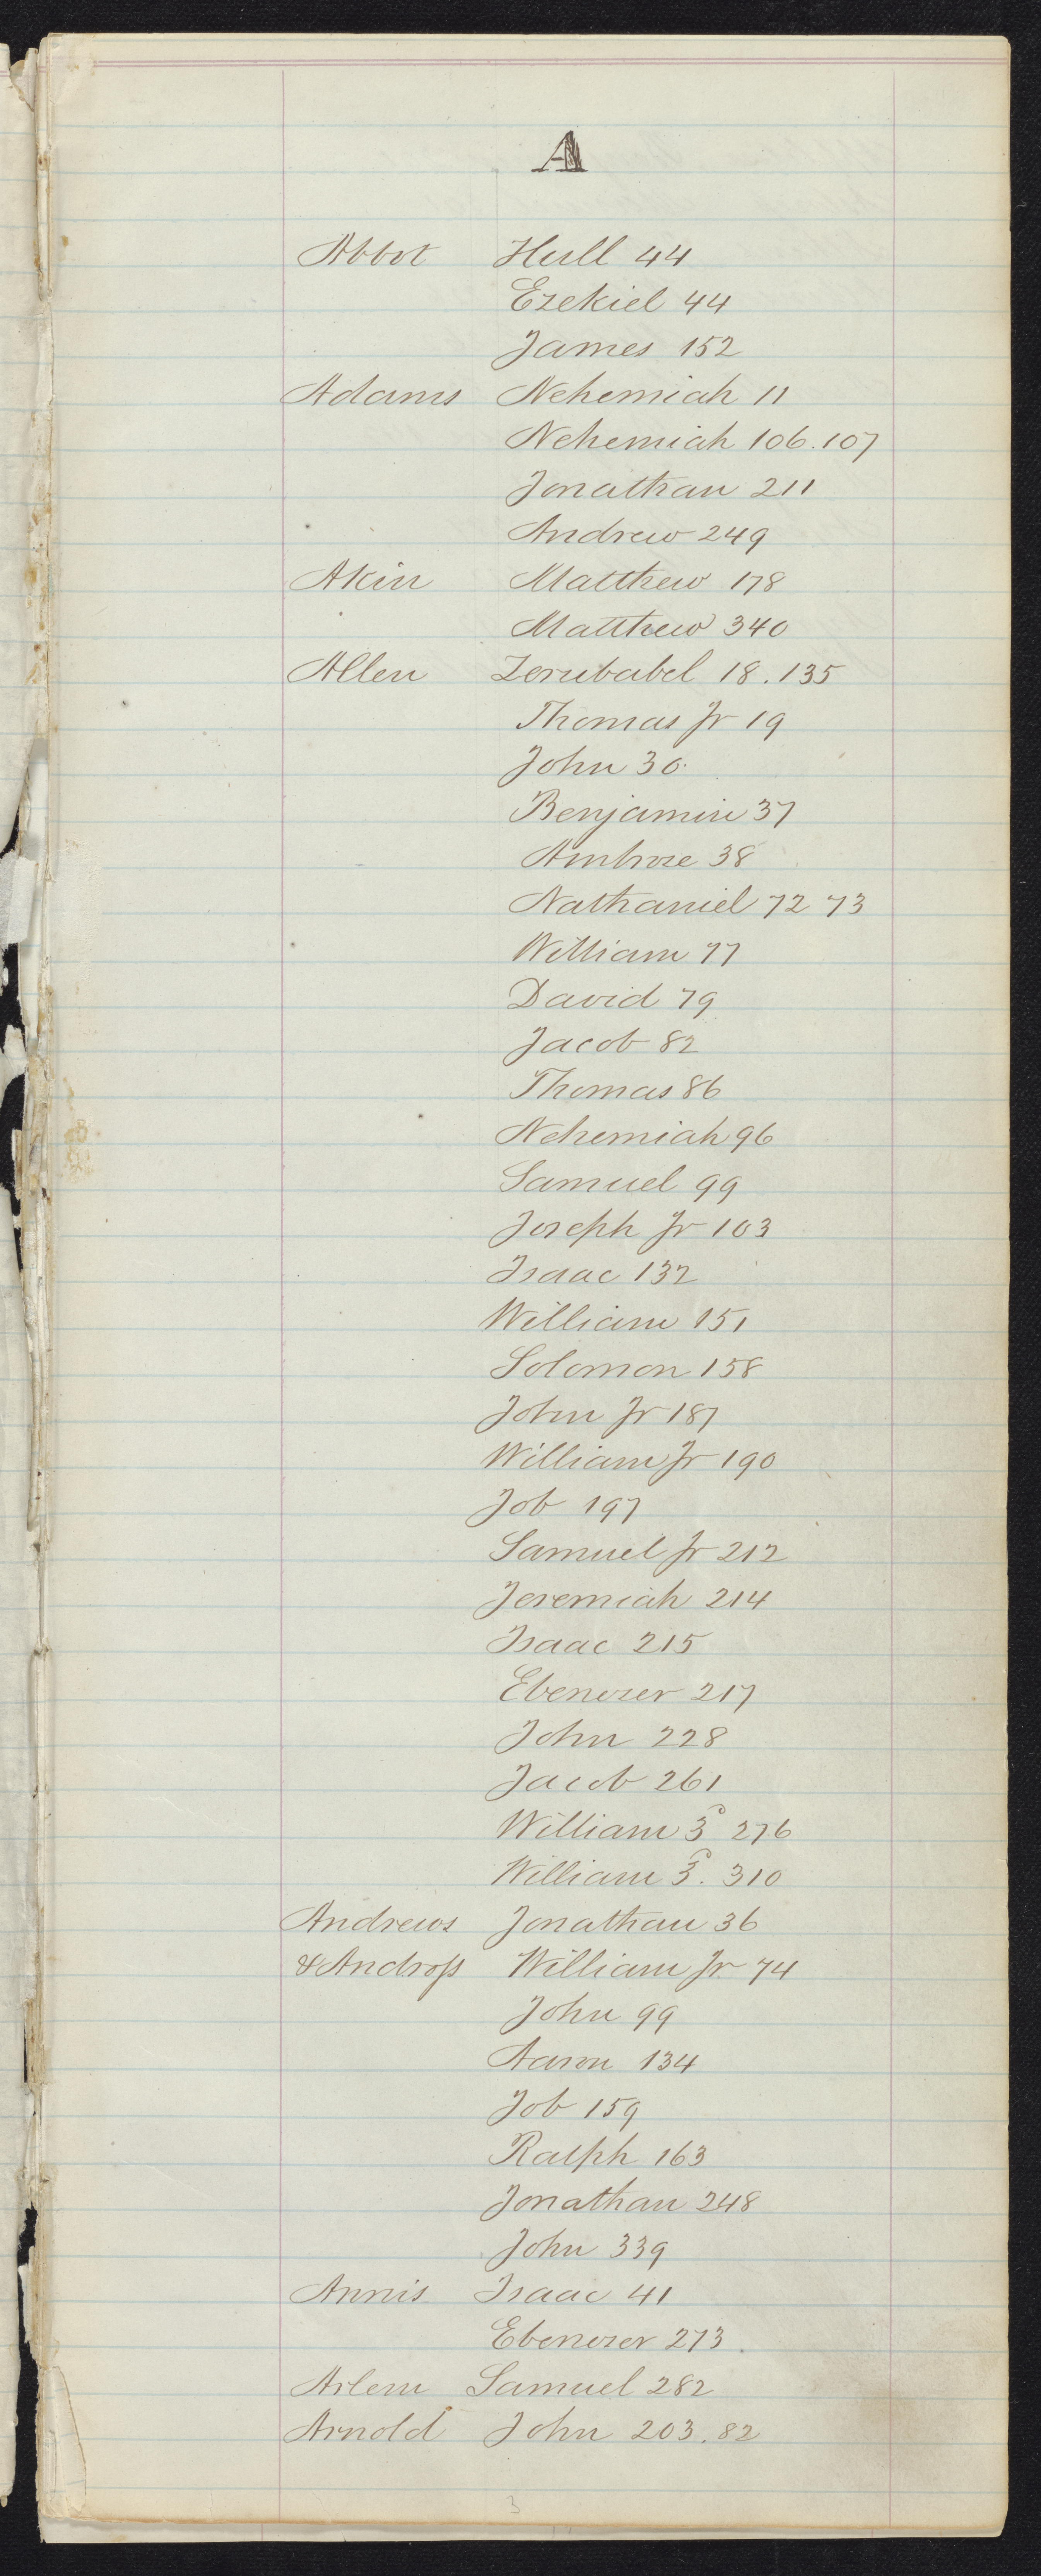 Page 8 of the Gloucester Births, Deaths, Intentions, and Marriages, 1739 to 1794